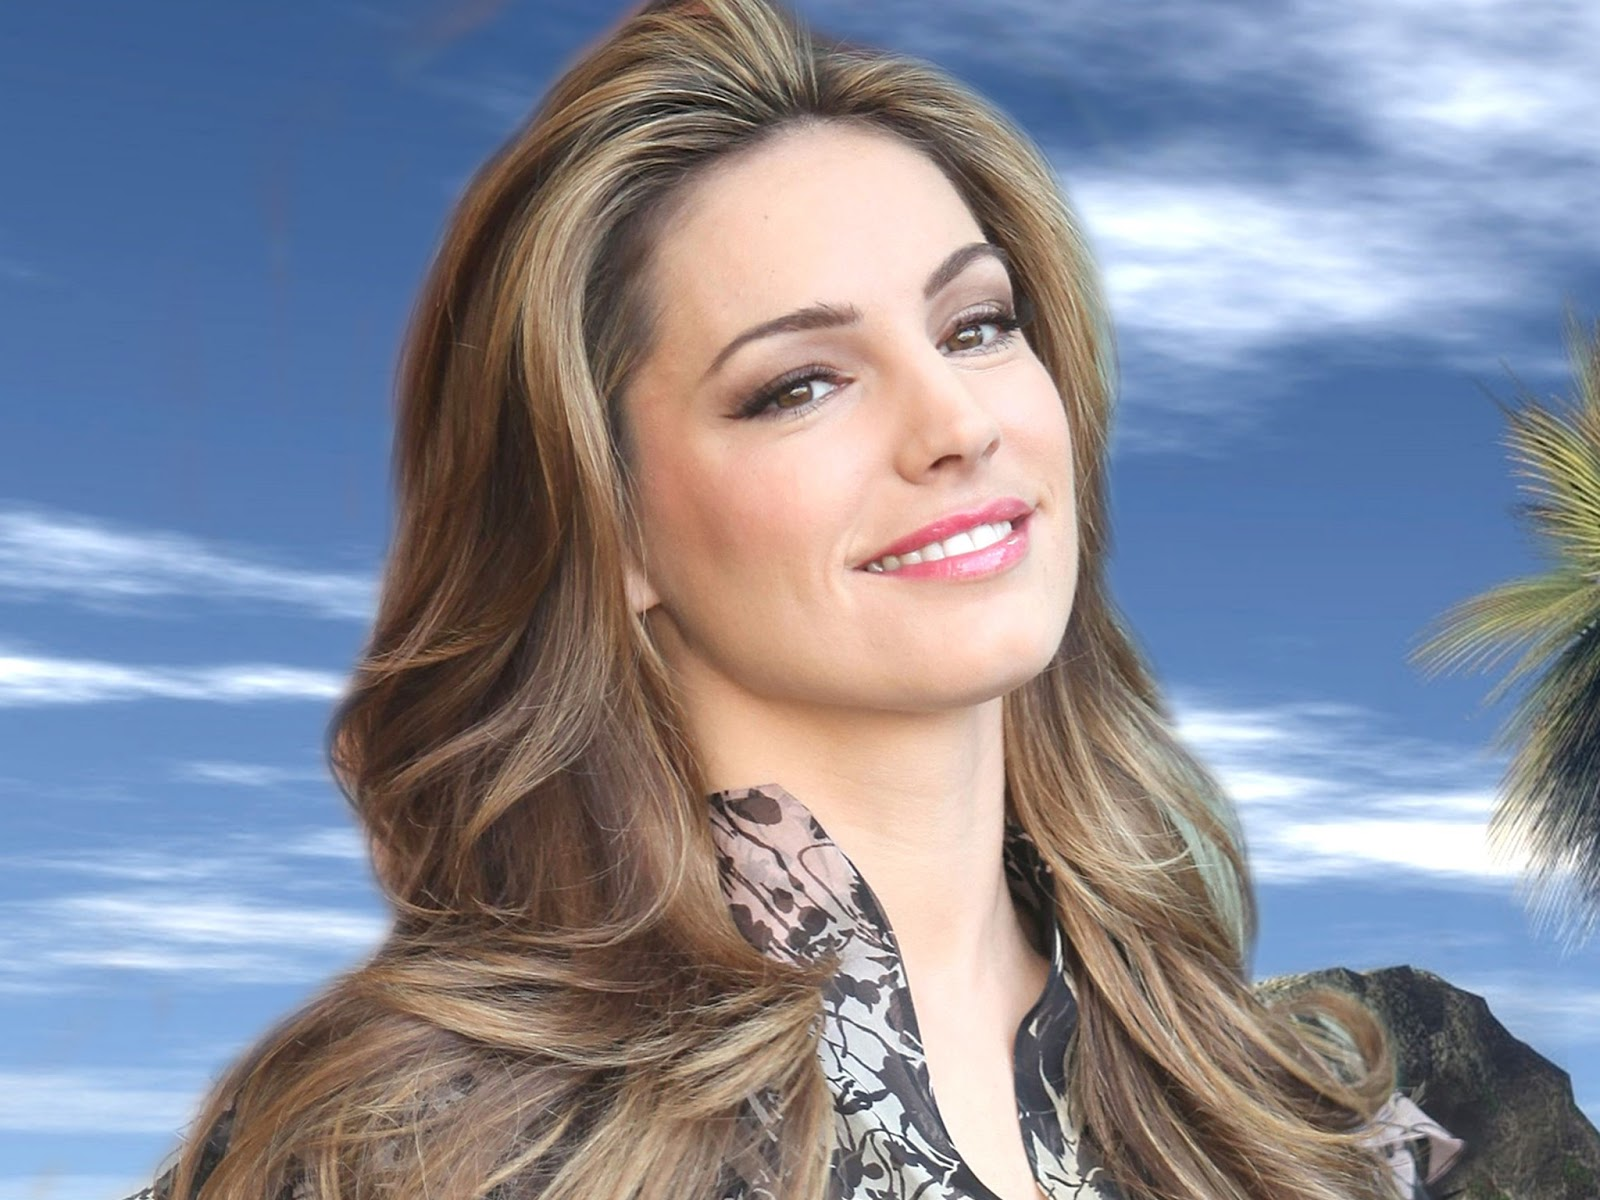 hollywood accessories model kelly brook hd wallpapers free download